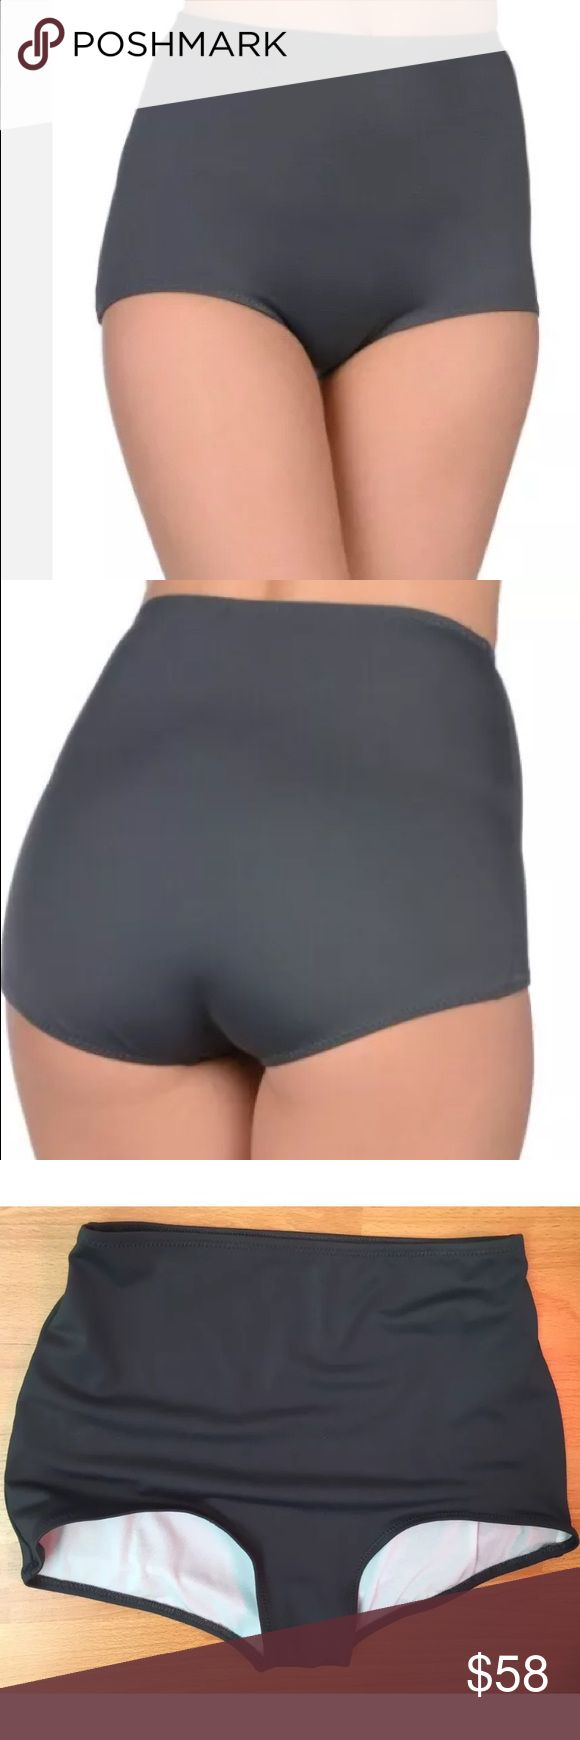 Norma Kamali High Waist Gray Bikini Bottom Cute and simple high waist gray bikini bottoms by Norma Kamali. Worn once on a TV set. Dry cleaned and sanitized and ready to wear.  In very good pre owned condition.   #1231816 Norma Kamali Swim